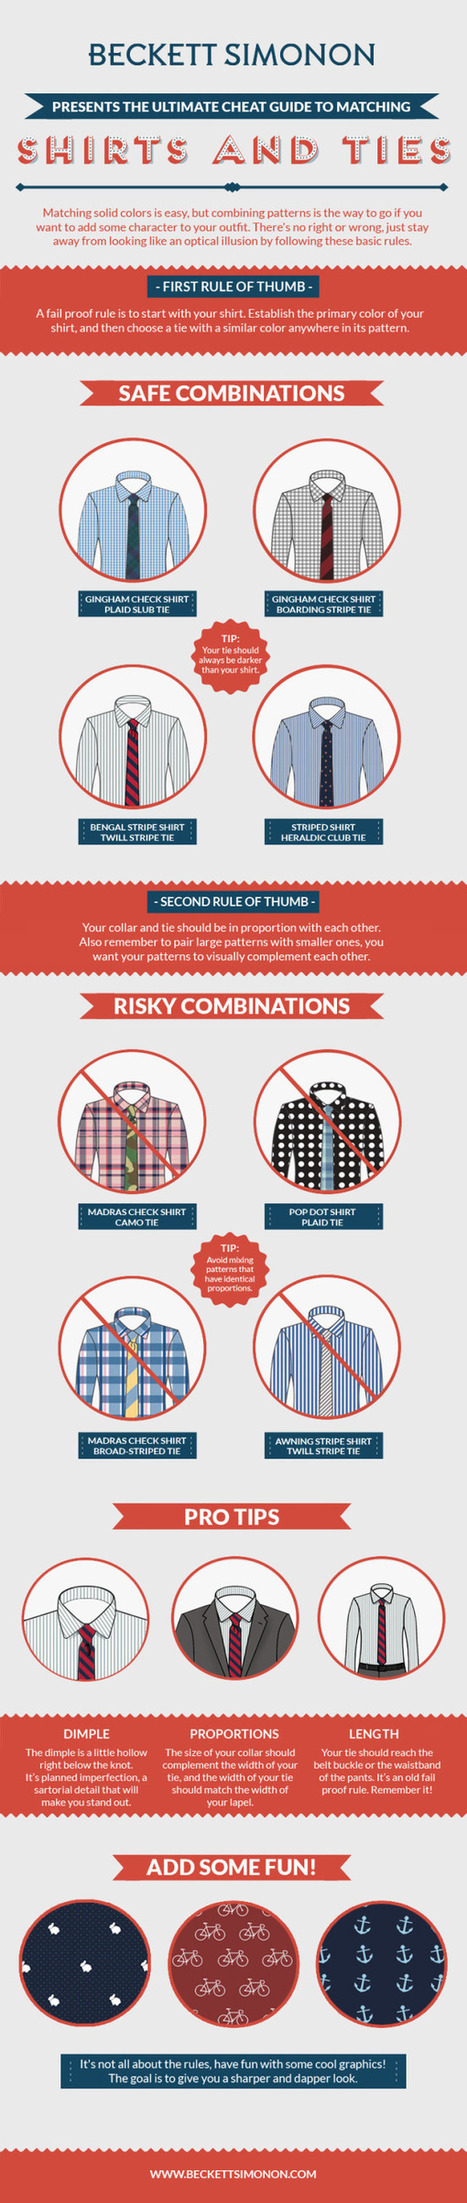 How to Match Shirt and TiePatterns - Cool Infographics | Fashion | Scoop.it